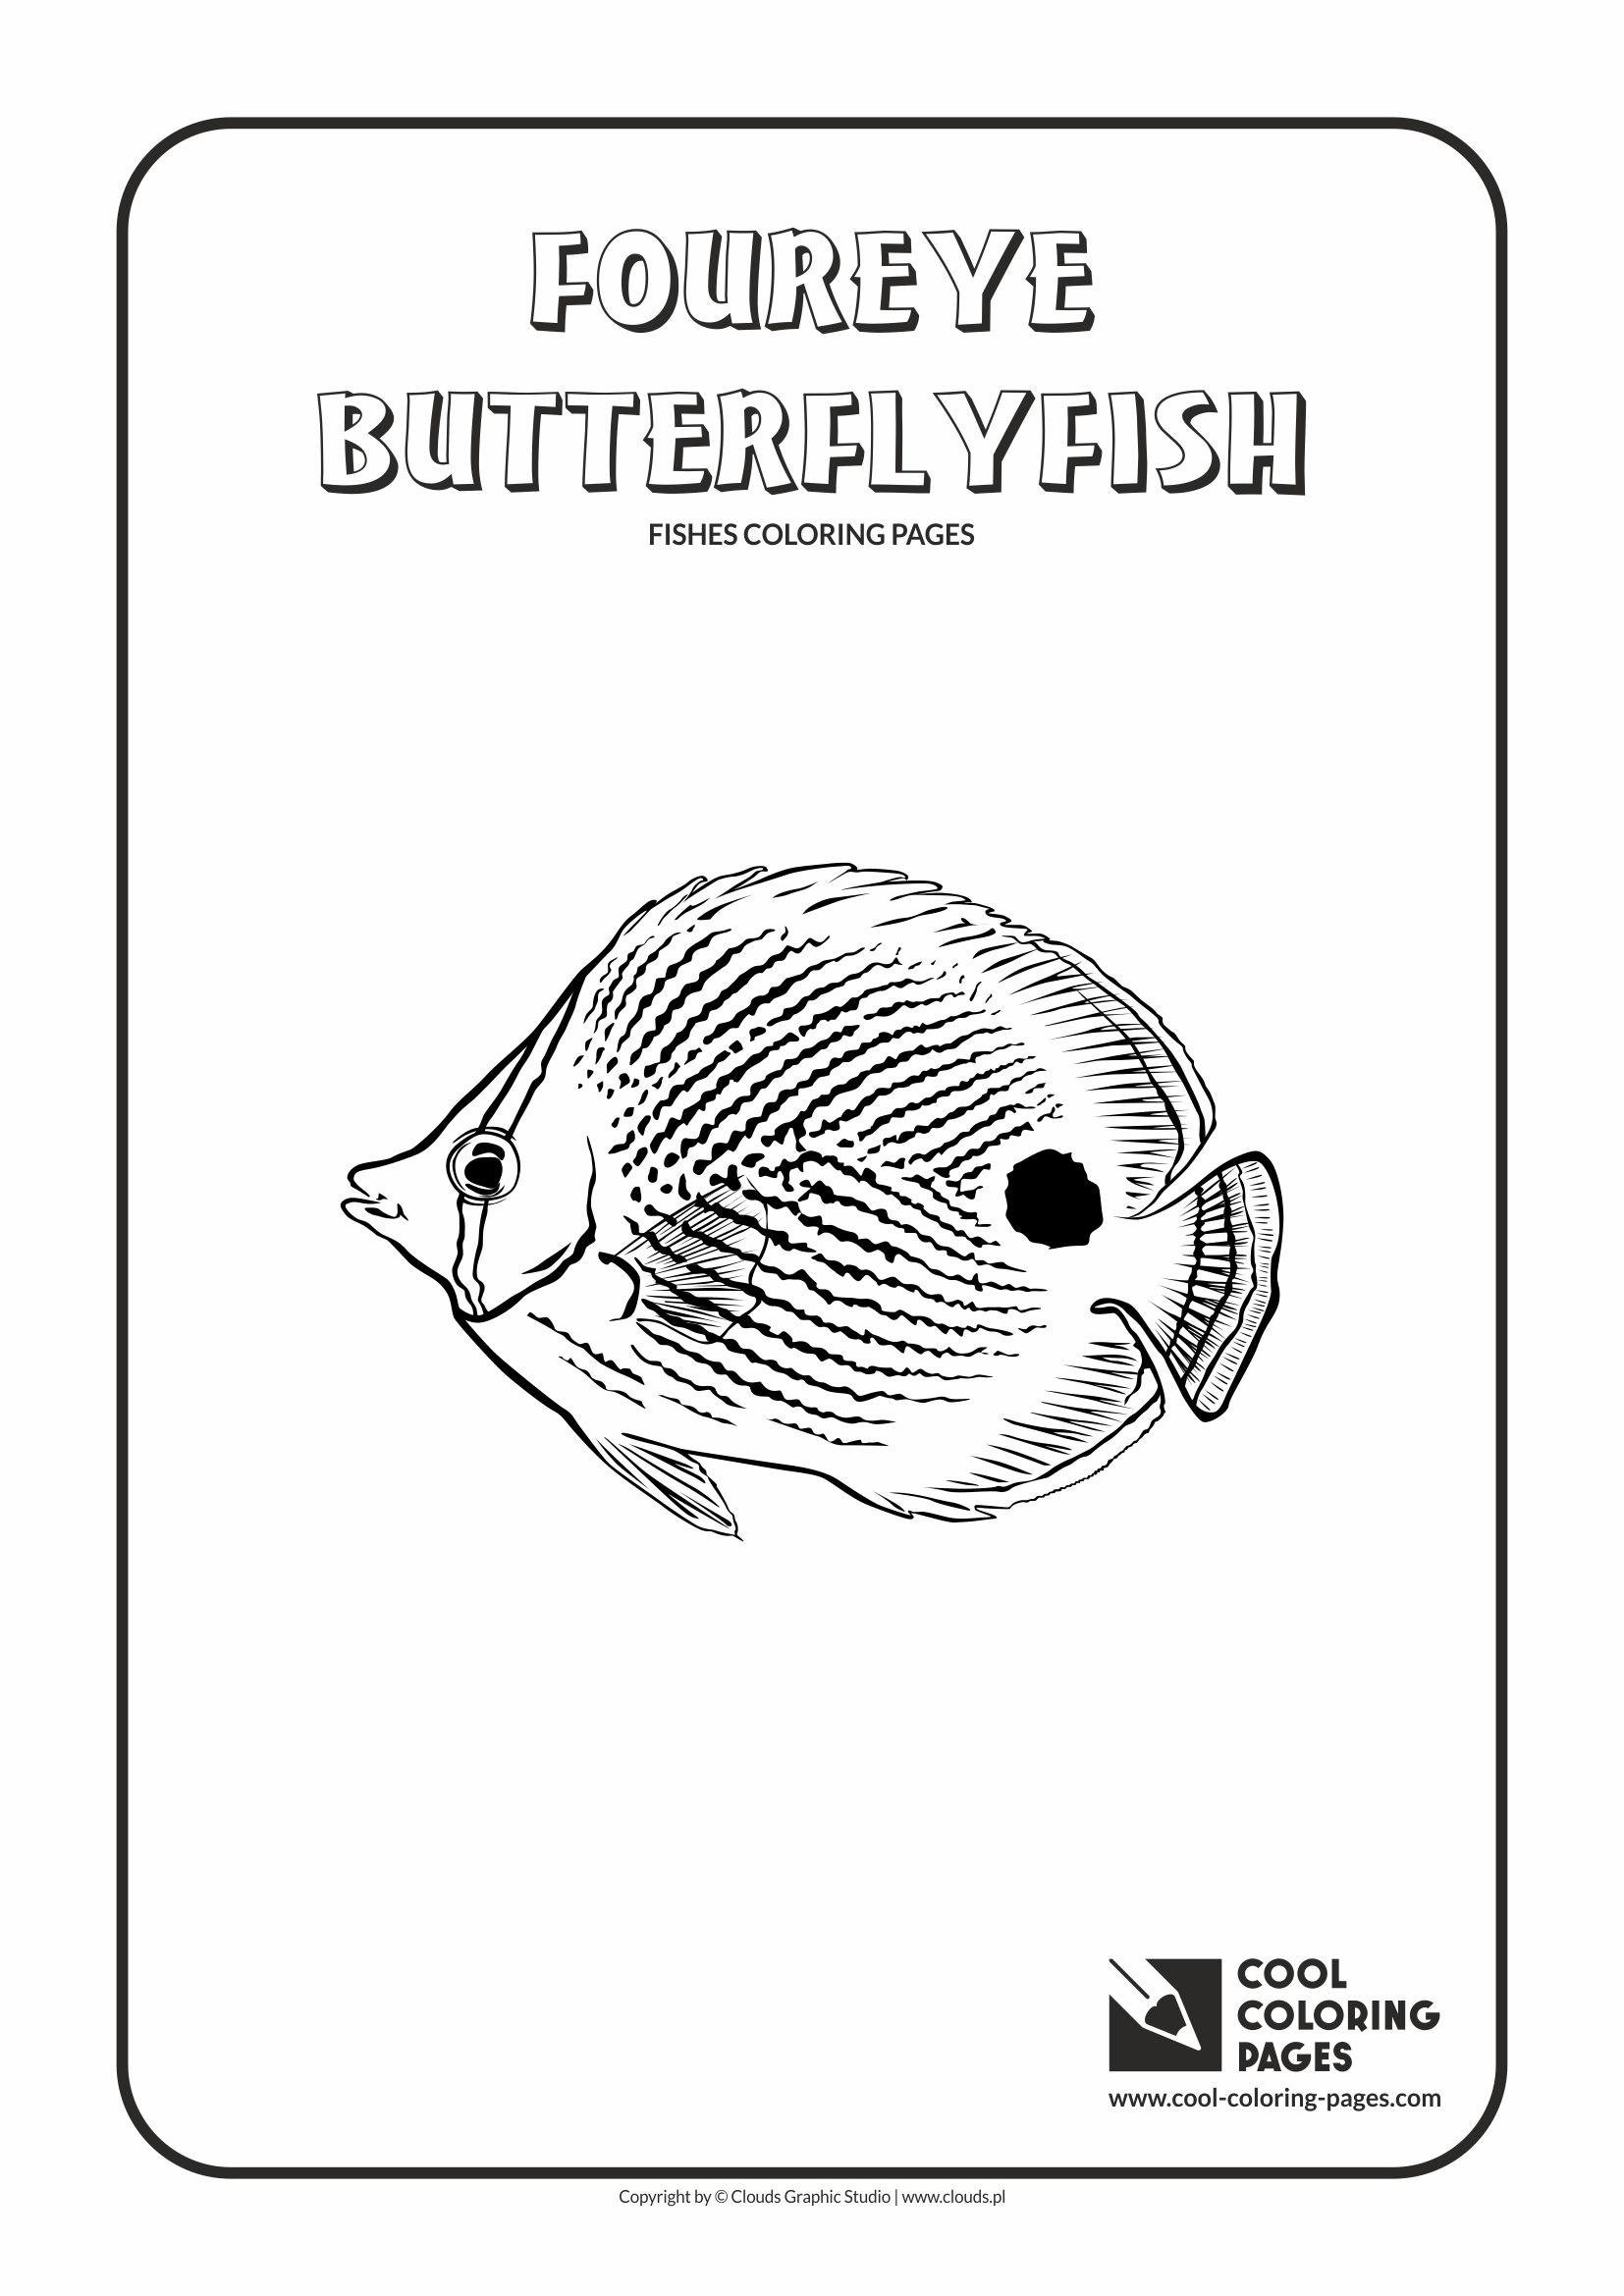 Cool Coloring Pages Foureye butterflyfish coloring page